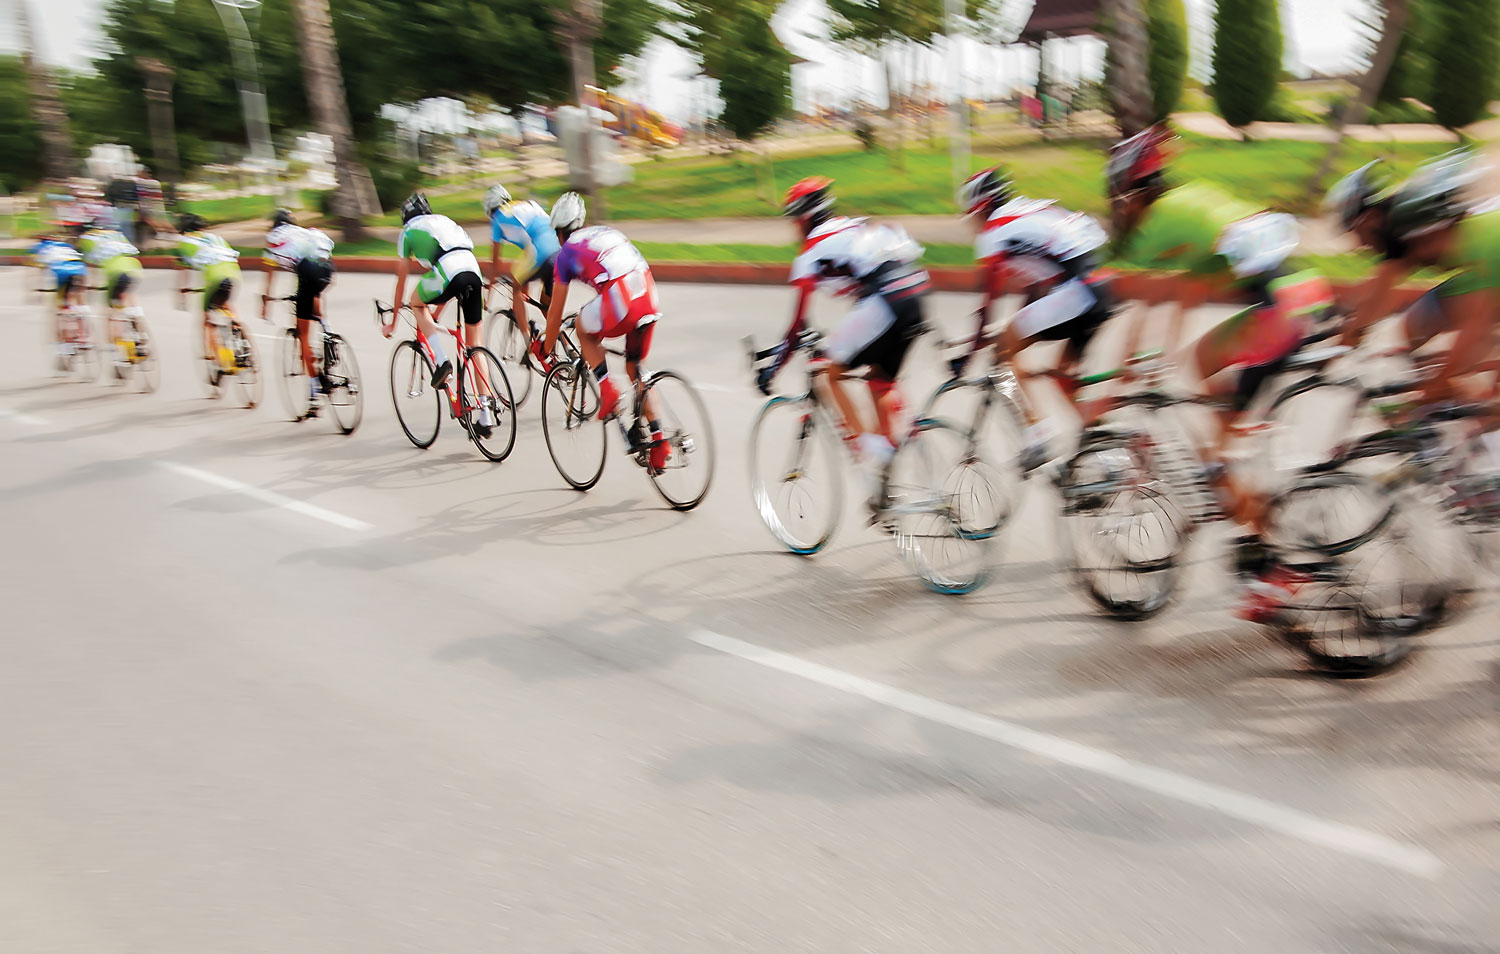 THE LEGAL SPIN HOW TO RIDE IN A PACELINE